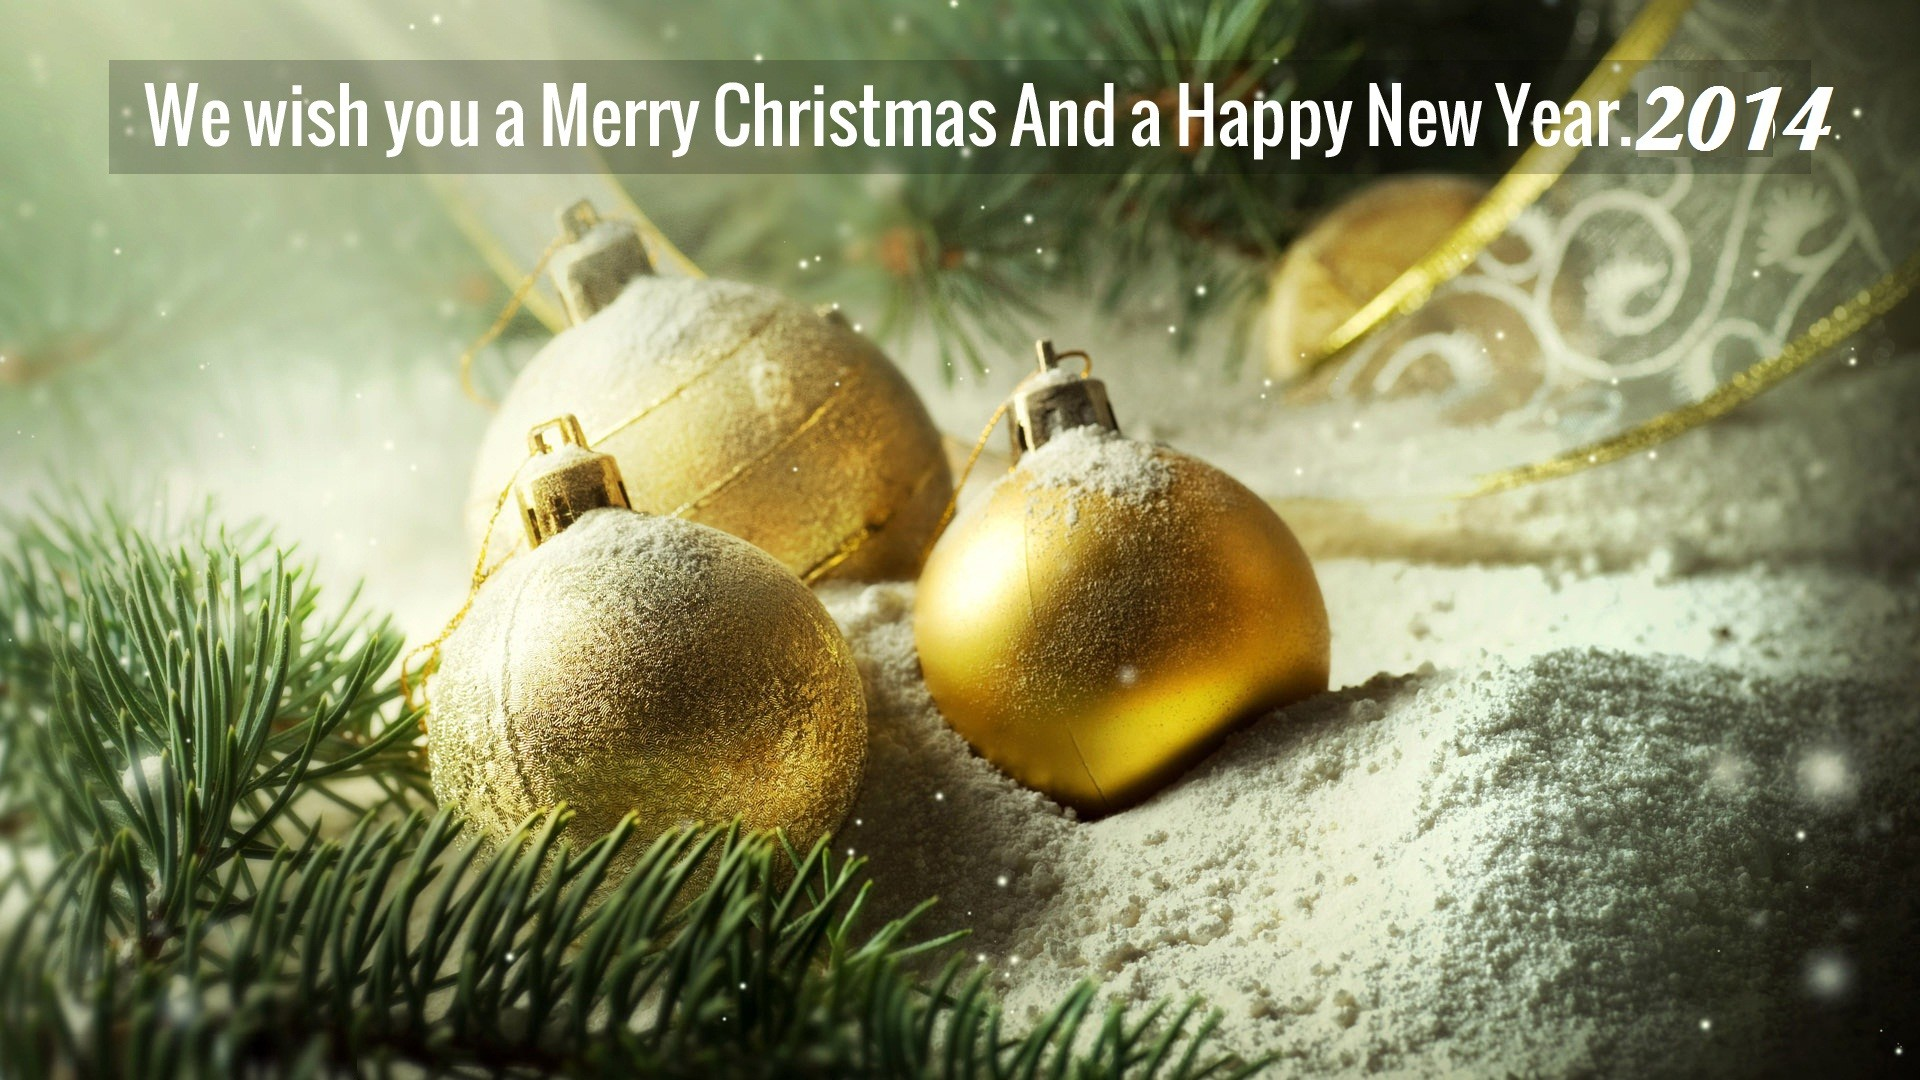 Happy New year 2014 & Merry Christmas Wallpapers